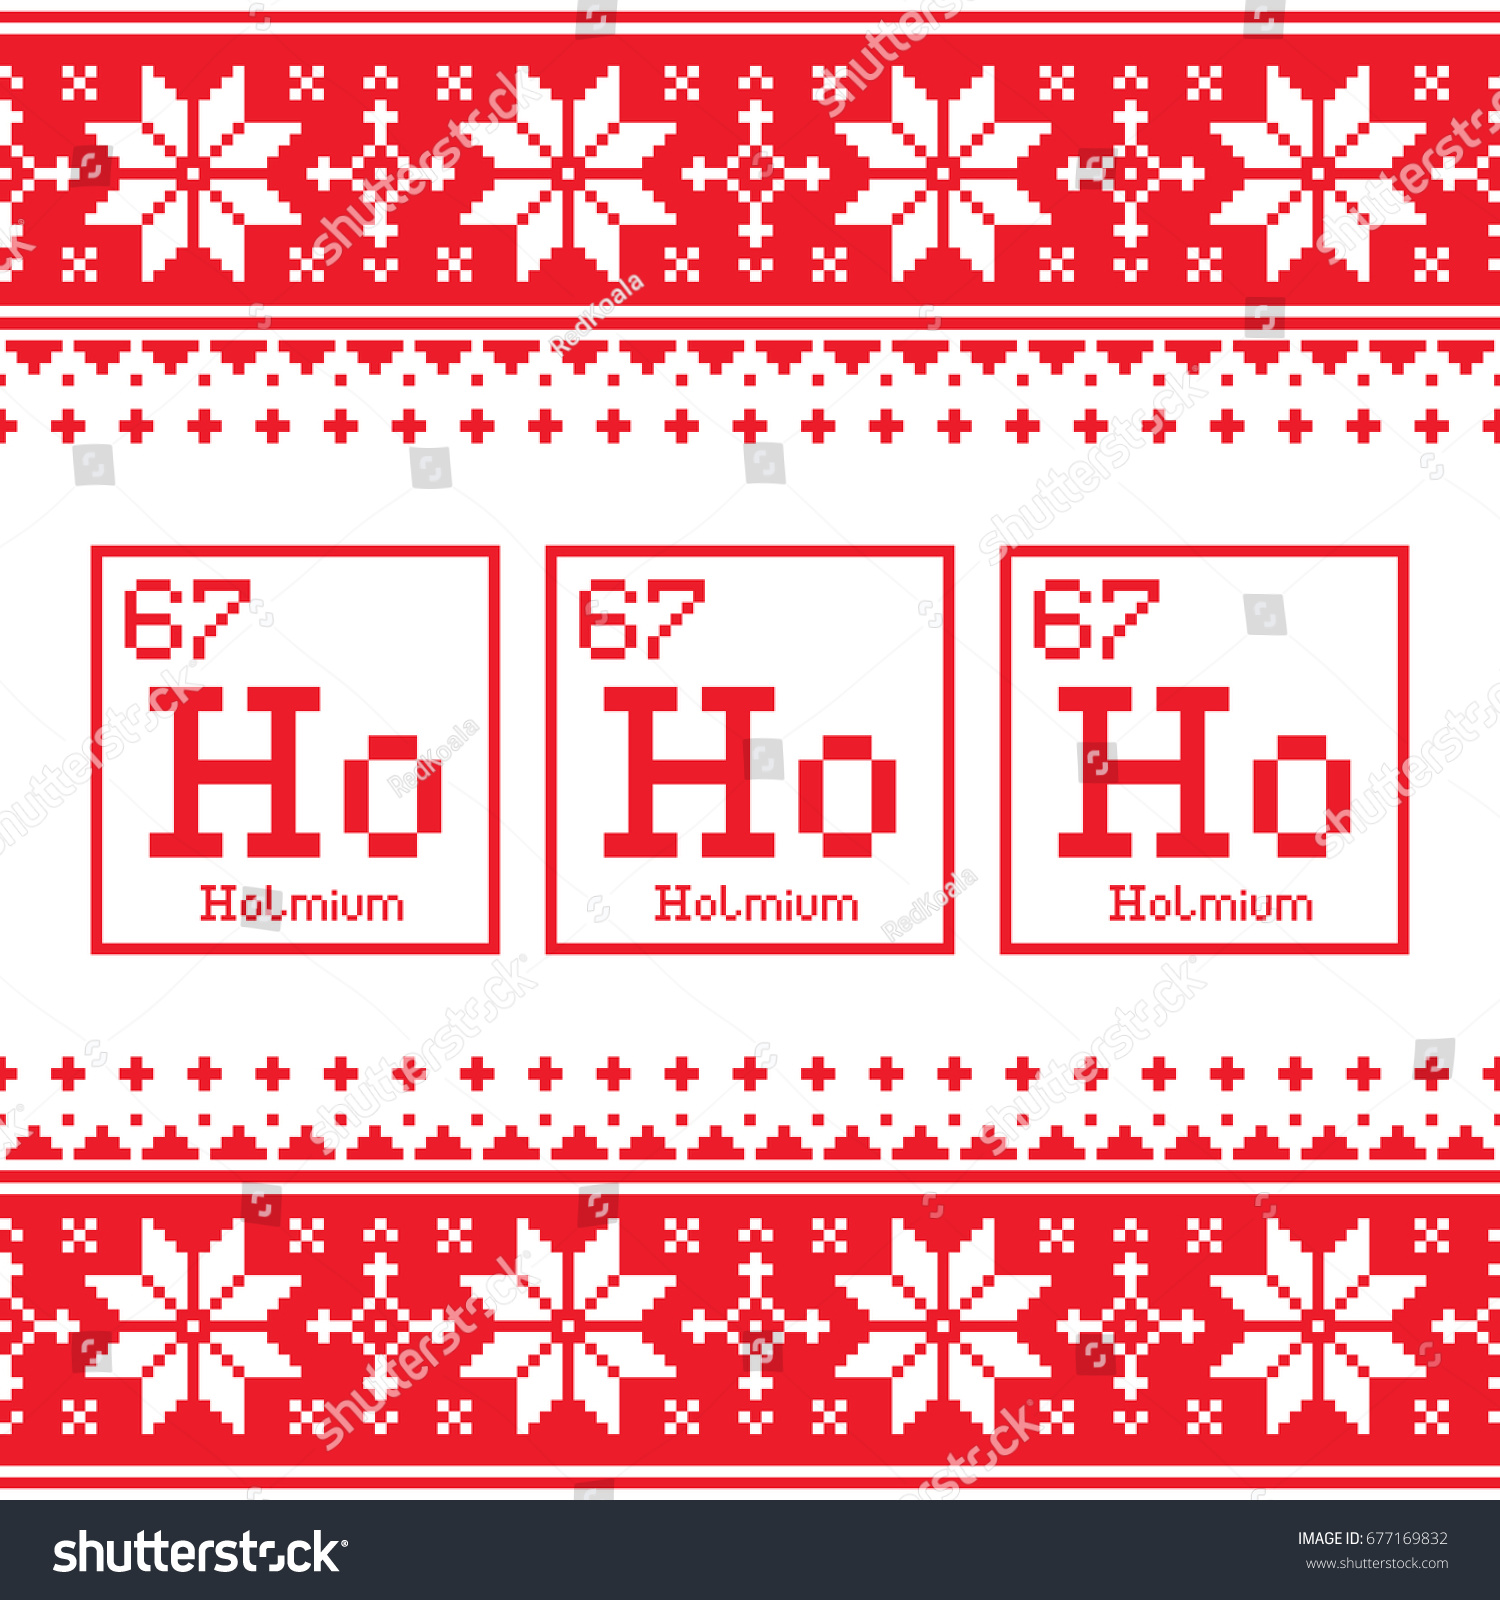 Geek christmas seamless pattern ho ho stock vector 677169832 geek christmas seamless pattern ho ho ho chemistry periodic table background ugly xmas sweater gamestrikefo Gallery